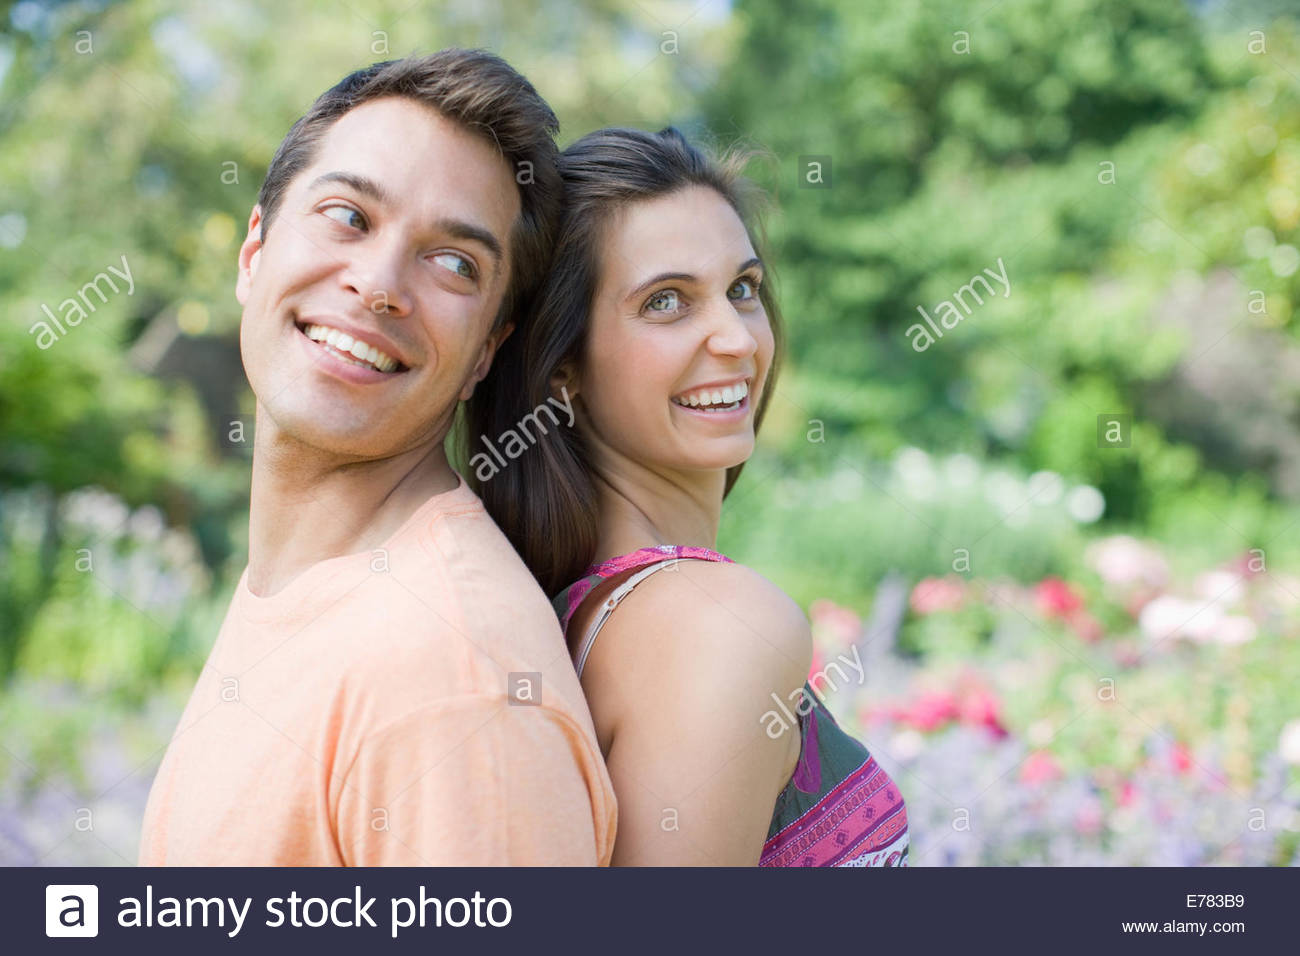 Smiling couple standing back to back in park - Stock Image